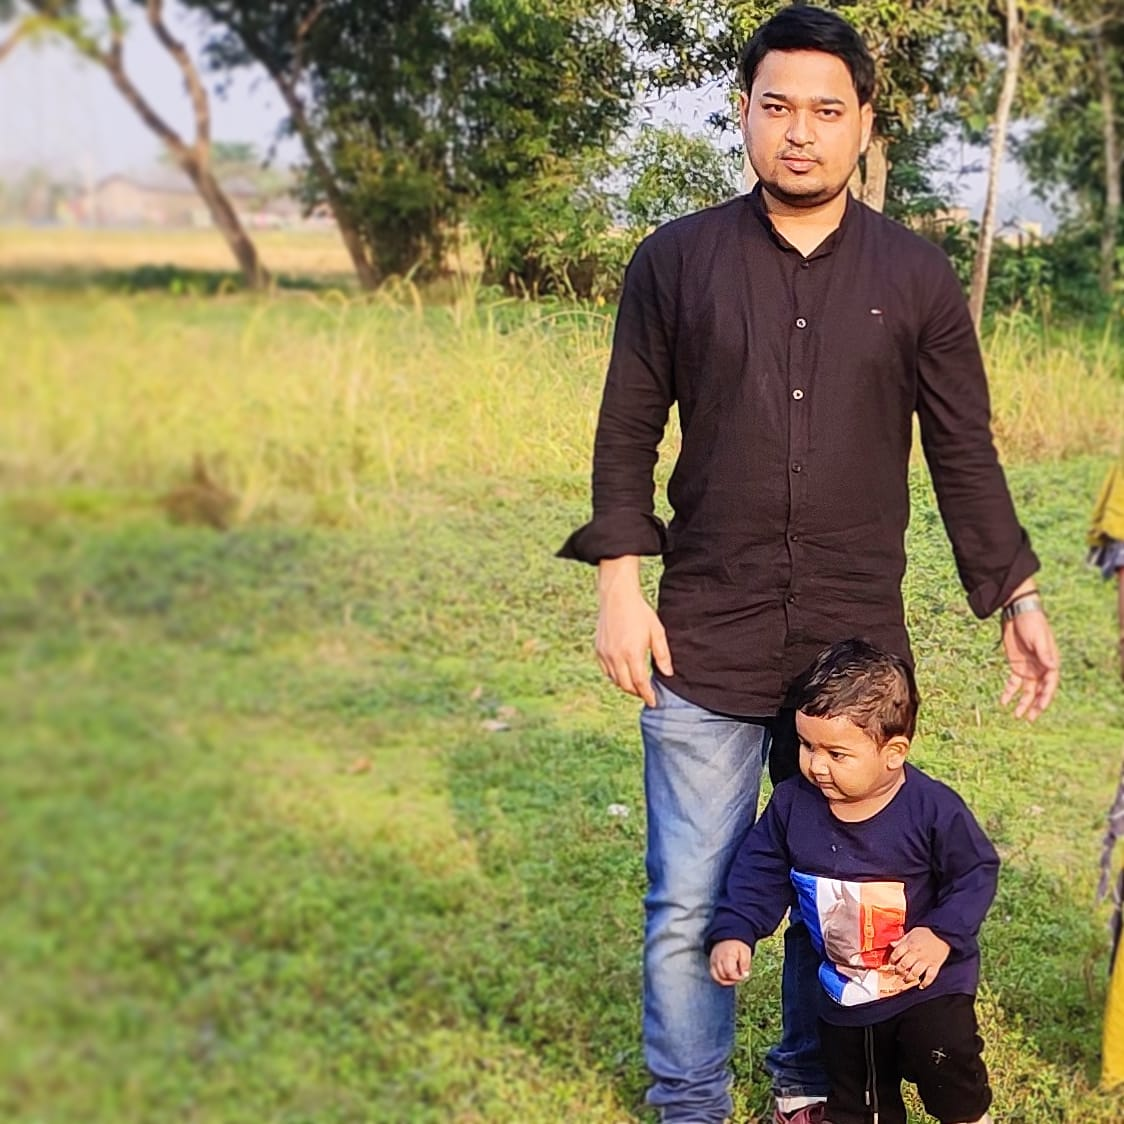 The holidays are all about Spending time with family and friends ❤️💙❤️  #holidays #familytime #hojai #assam #murajhar #tahiralom #son #fatherandson @ Hojai https://t.co/F6JTpfNmQQ https://t.co/D6bVBfl0P5